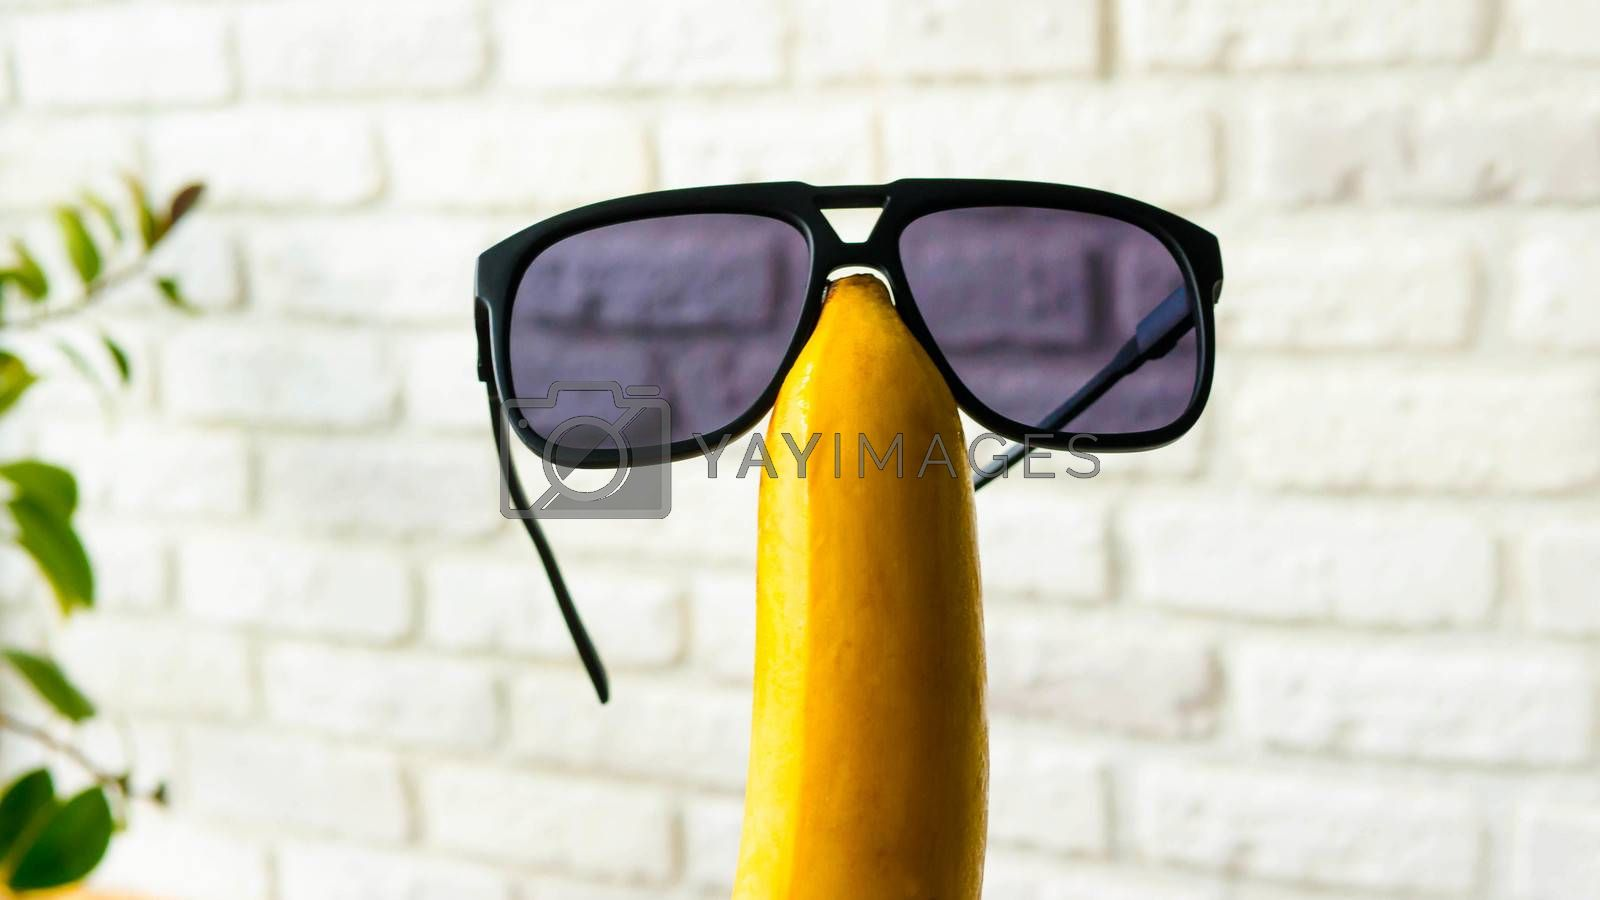 Royalty free image of Sunglasses on a banana on a brick wall background,close-up.Cheerful fruit with glasses by Andriii_Klapkoo